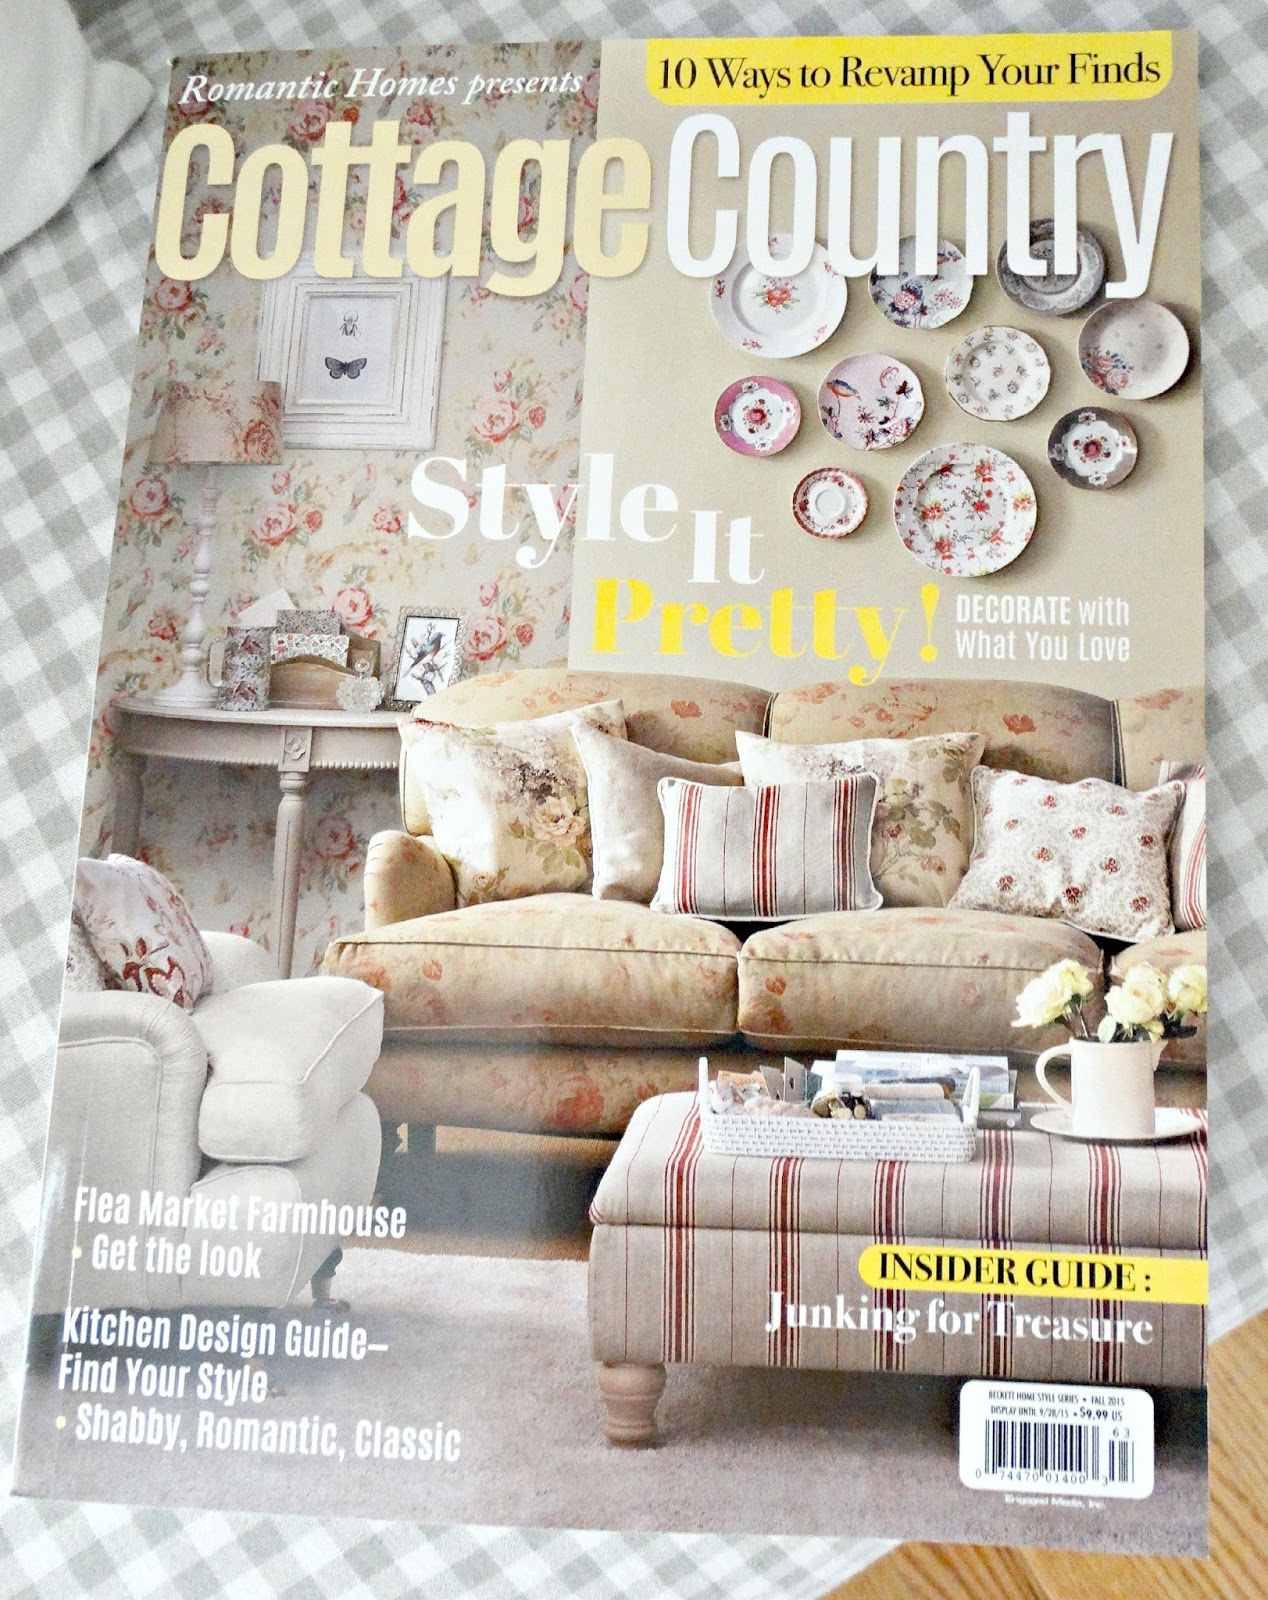 Junk chic cottage rh cottage country magazine road side for Country cottage magazine